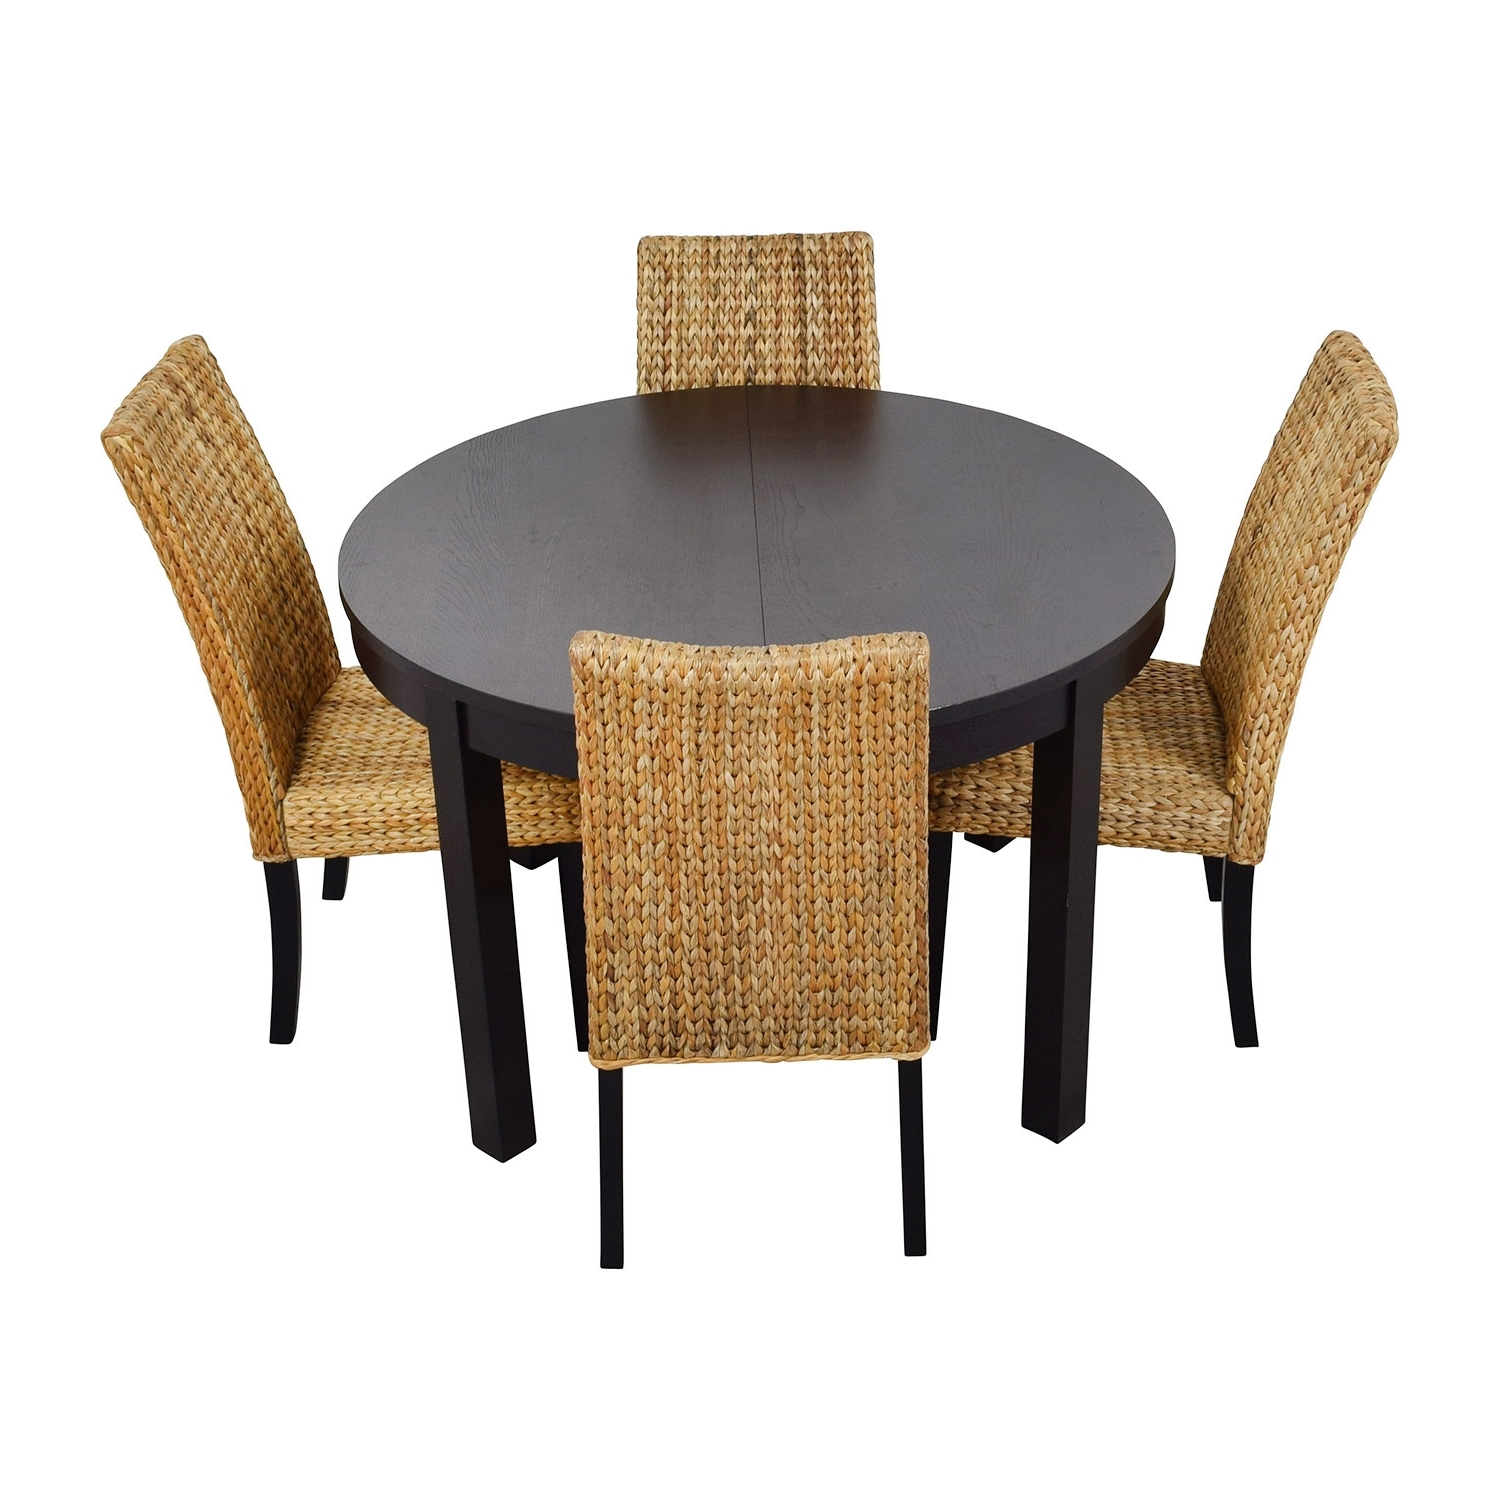 [%66% Off – Macy's & Ikea Round Black Dining Table Set With Four Inside Fashionable Ikea Round Dining Tables Set|Ikea Round Dining Tables Set With Newest 66% Off – Macy's & Ikea Round Black Dining Table Set With Four|Fashionable Ikea Round Dining Tables Set Within 66% Off – Macy's & Ikea Round Black Dining Table Set With Four|2018 66% Off – Macy's & Ikea Round Black Dining Table Set With Four With Regard To Ikea Round Dining Tables Set%] (View 3 of 25)